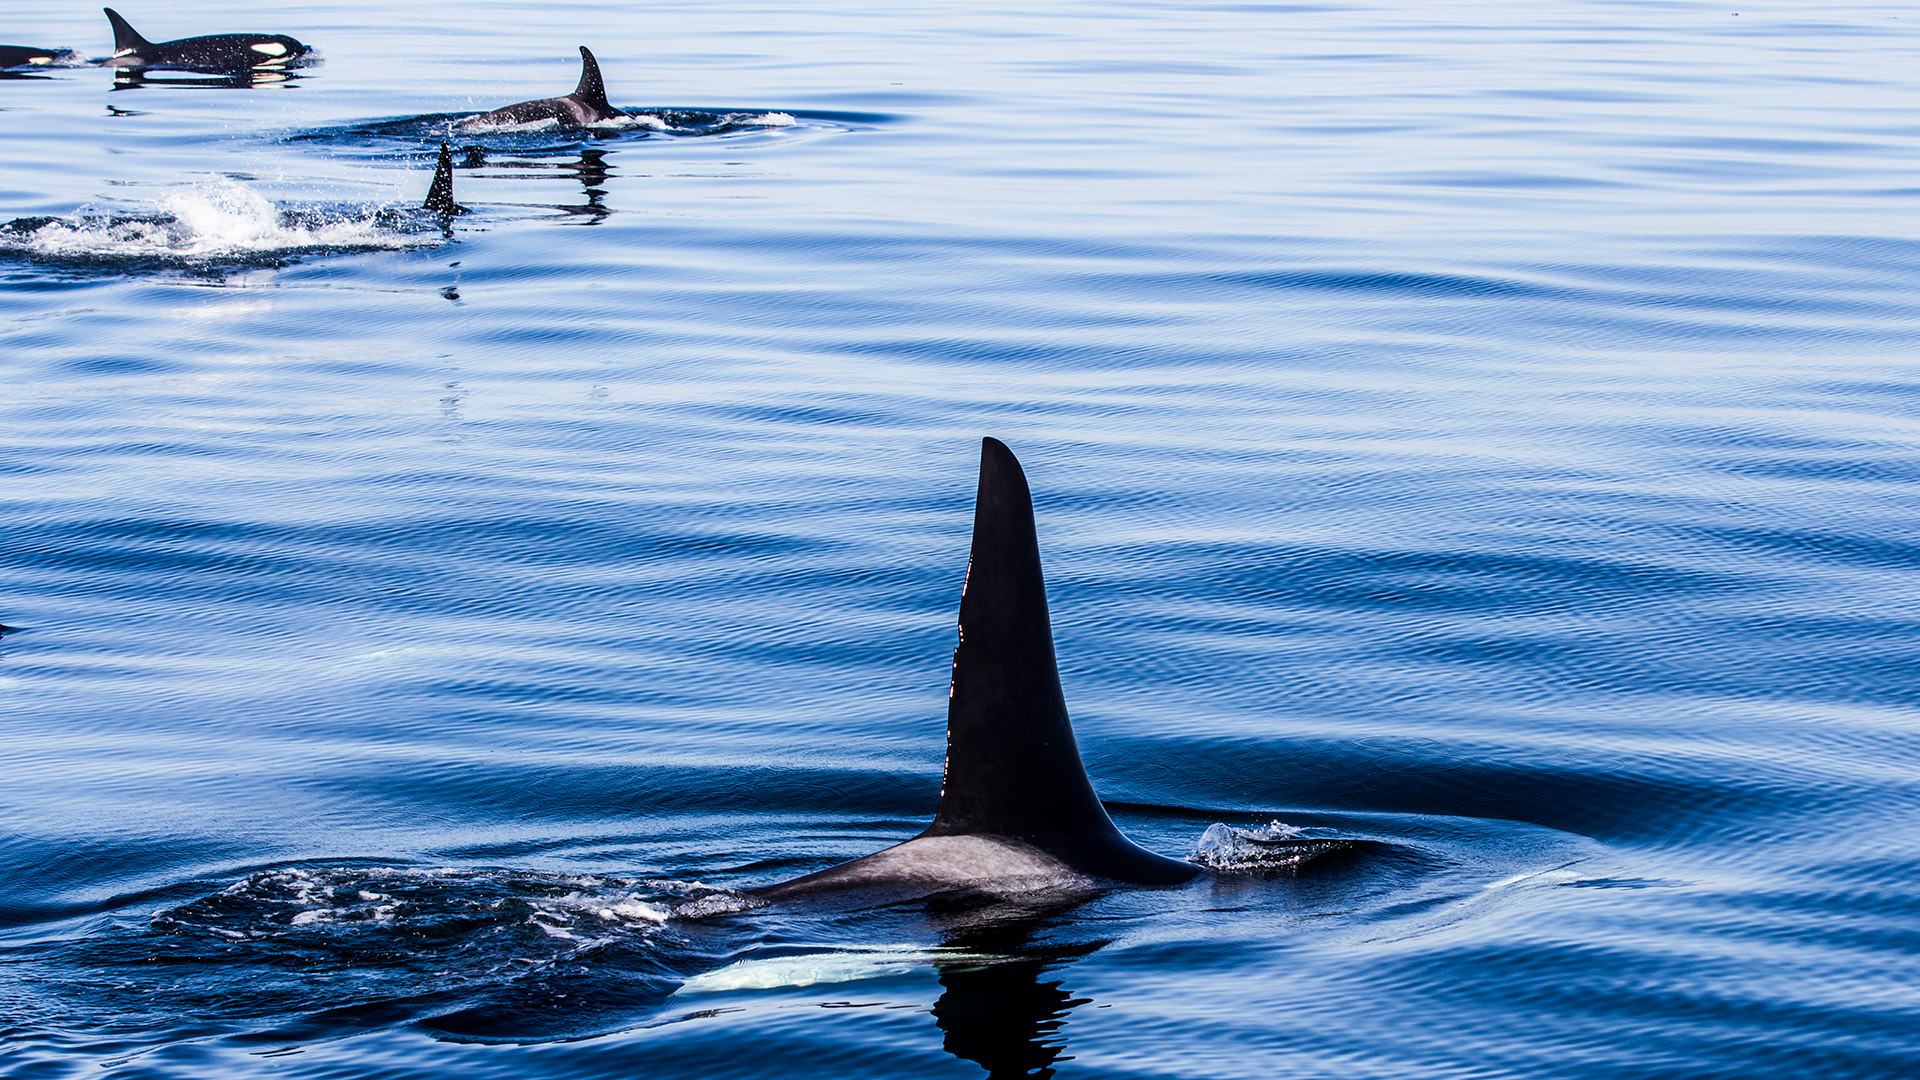 Killer whales swimming, only showing their fins.